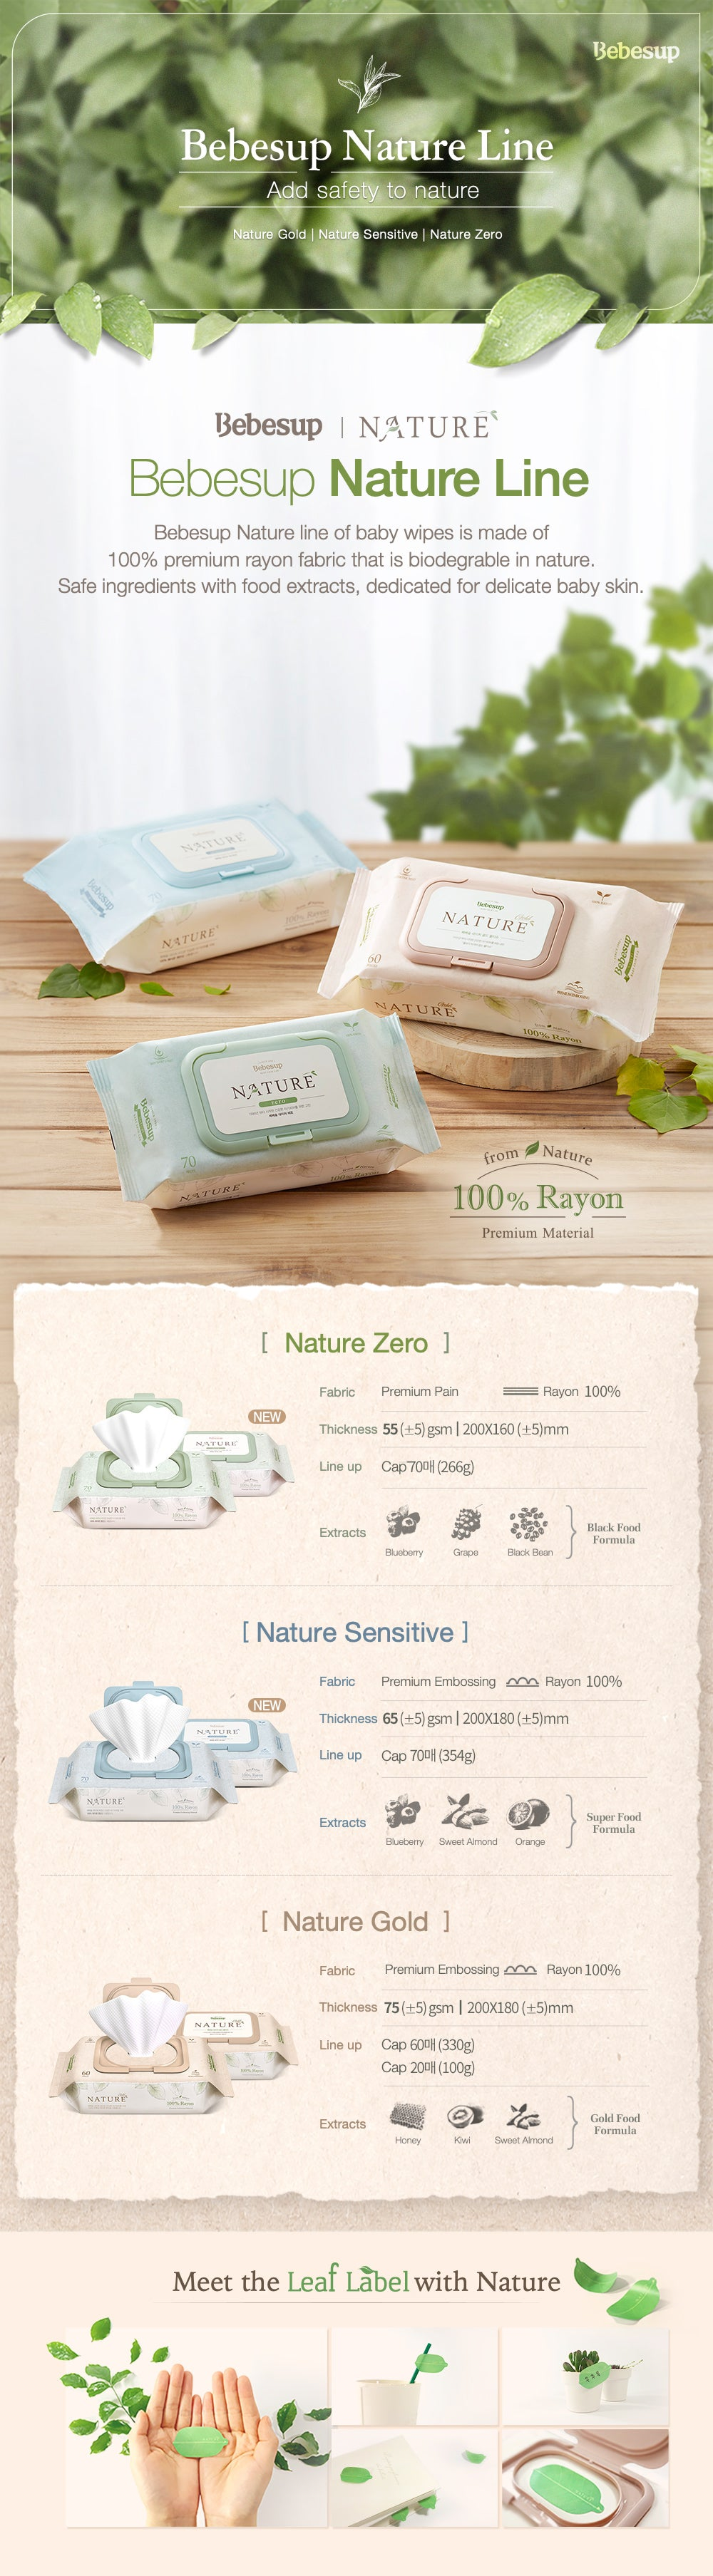 Biodegradable Bebesup Nature Line | Love of Nature